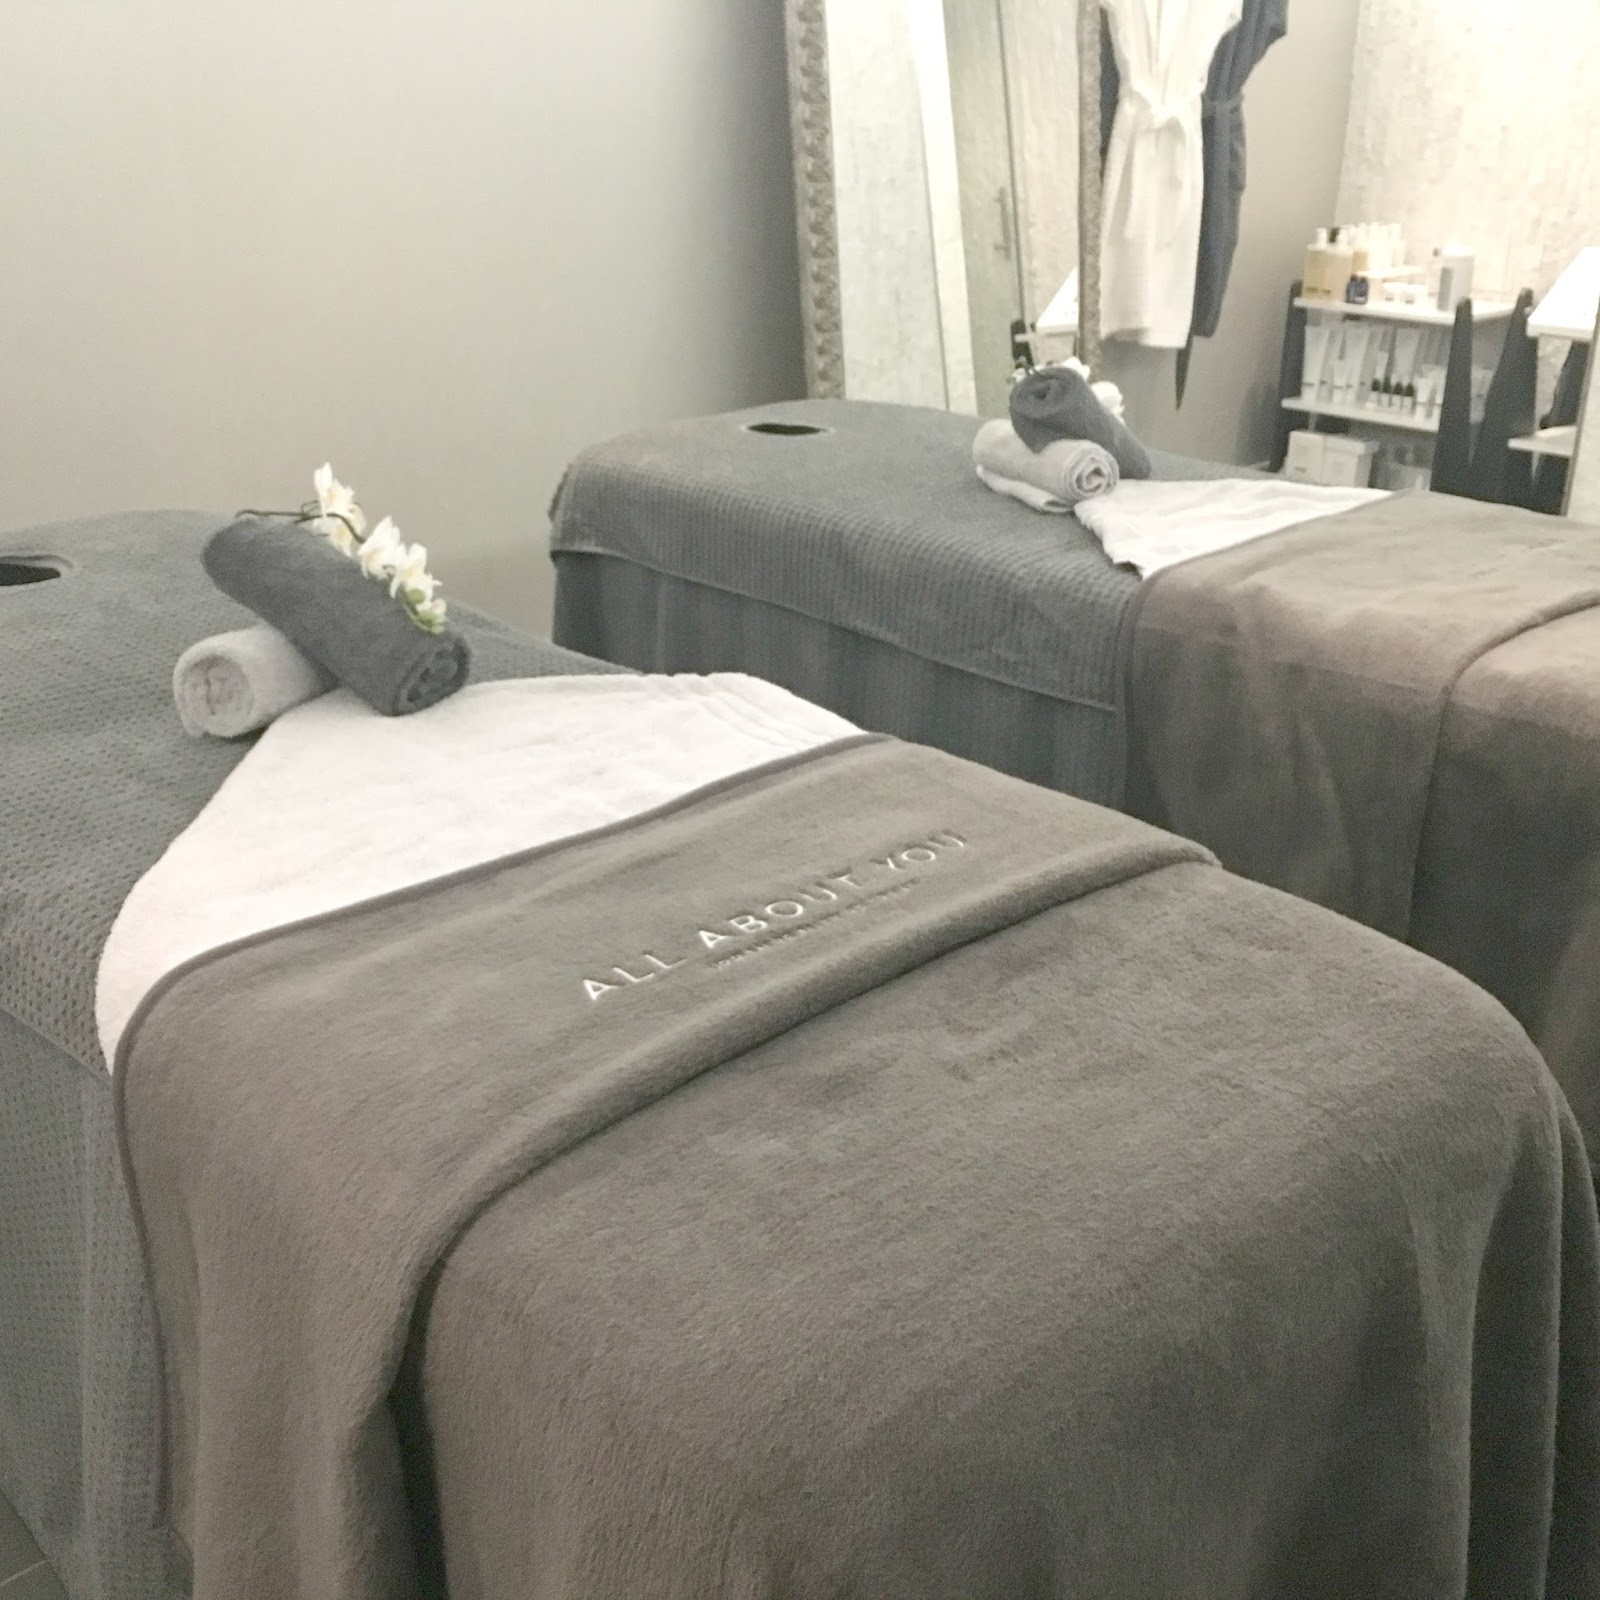 City Centre Spa in Newcastle - All About You, Grey Street Hotel - Treatment Room